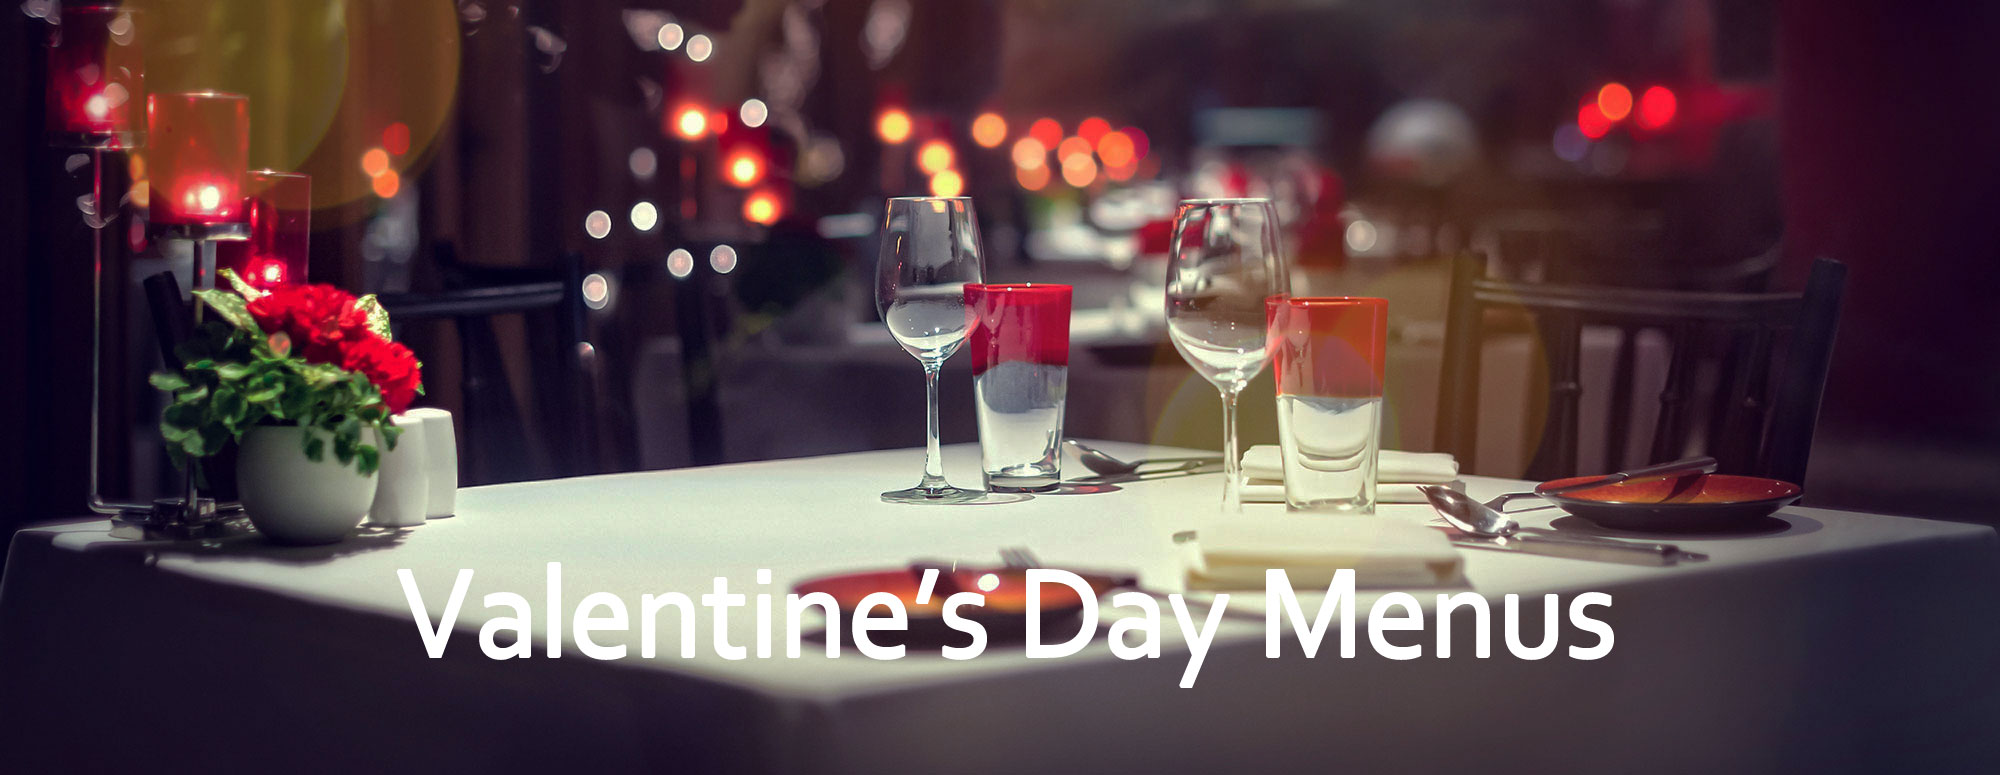 Valentine's day menus in restaurants table for two candles flowers